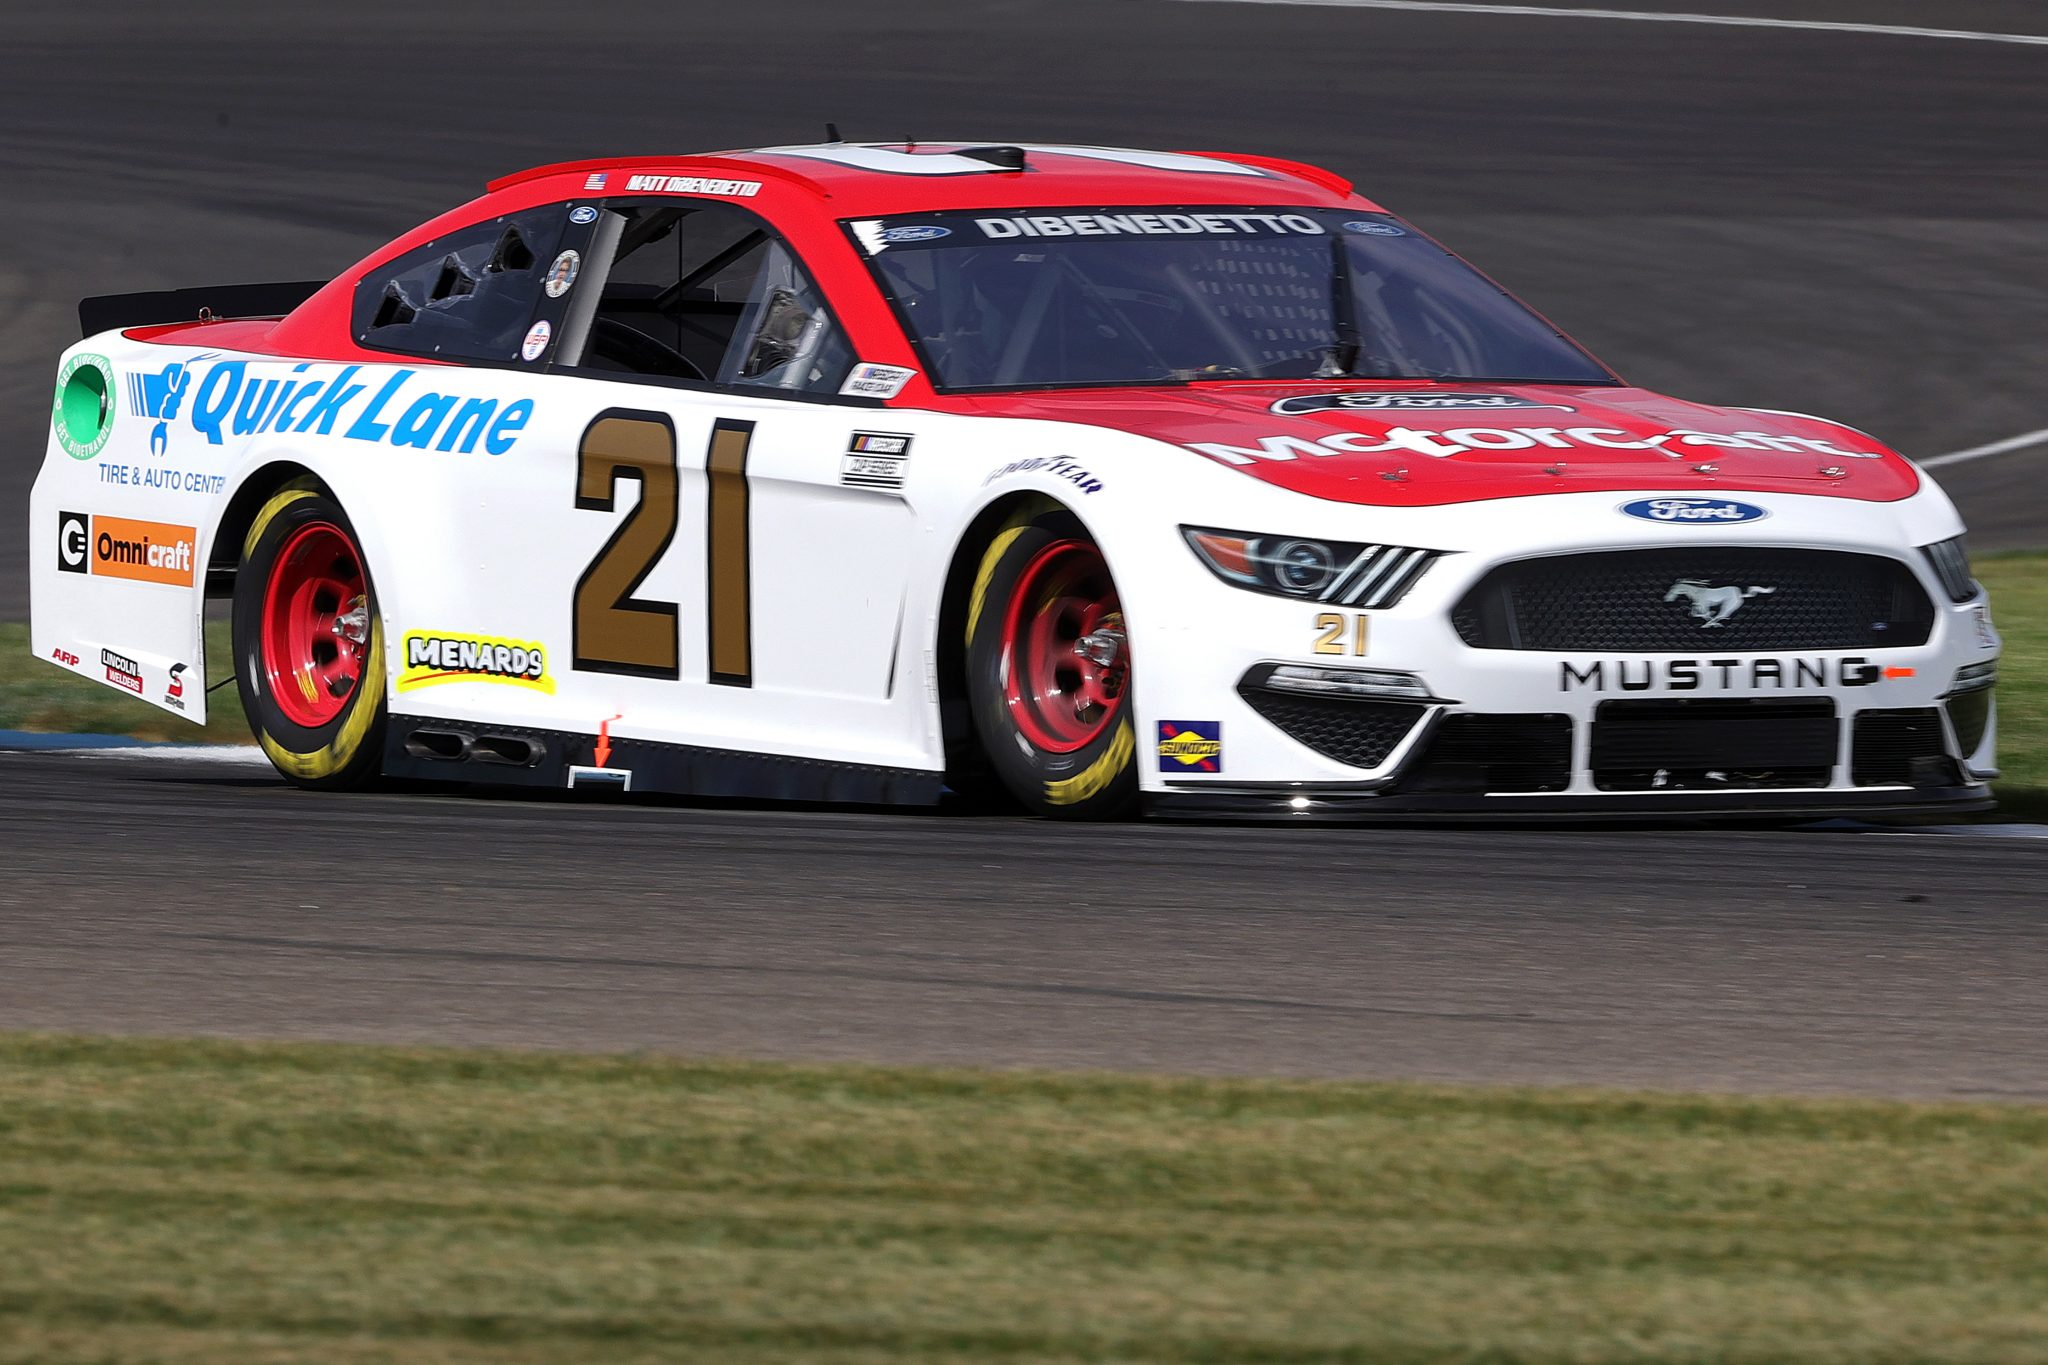 INDIANAPOLIS, INDIANA - AUGUST 14: Matt Dibenedetto, driver of the #21 Motorcraft/Quick Lane Ford, drives during practice for the NASCAR Cup Series Verizon 200 at the Brickyard at Indianapolis Motor Speedway on August 14, 2021 in Indianapolis, Indiana. (Photo by Stacy Revere/Getty Images)   Getty Images